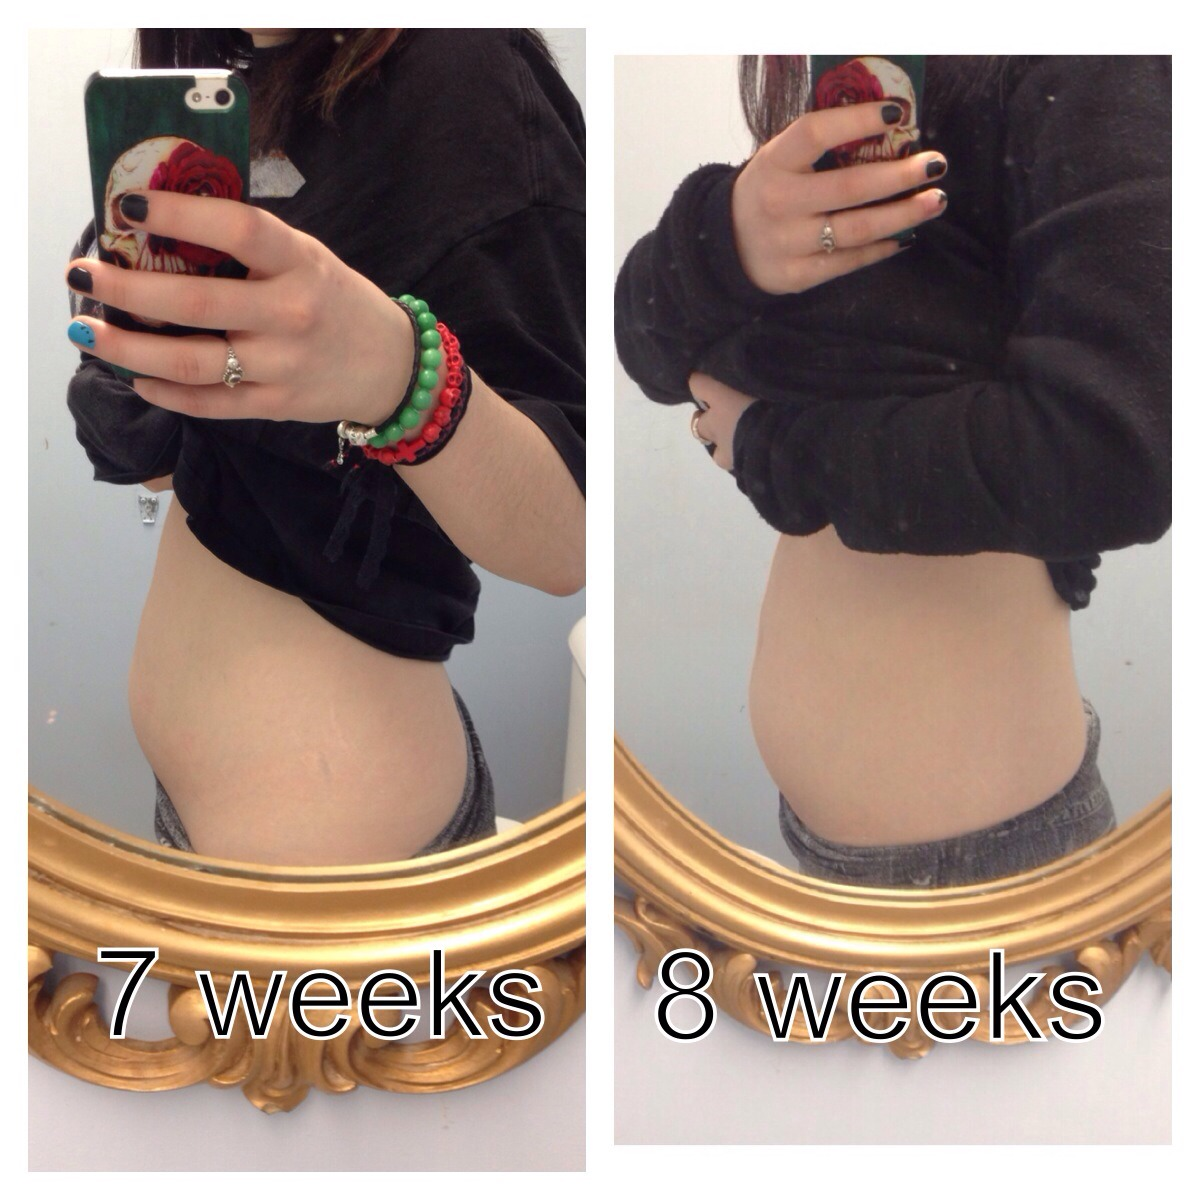 8 Weeks Pregnant, Showing Already! - New Kids Center